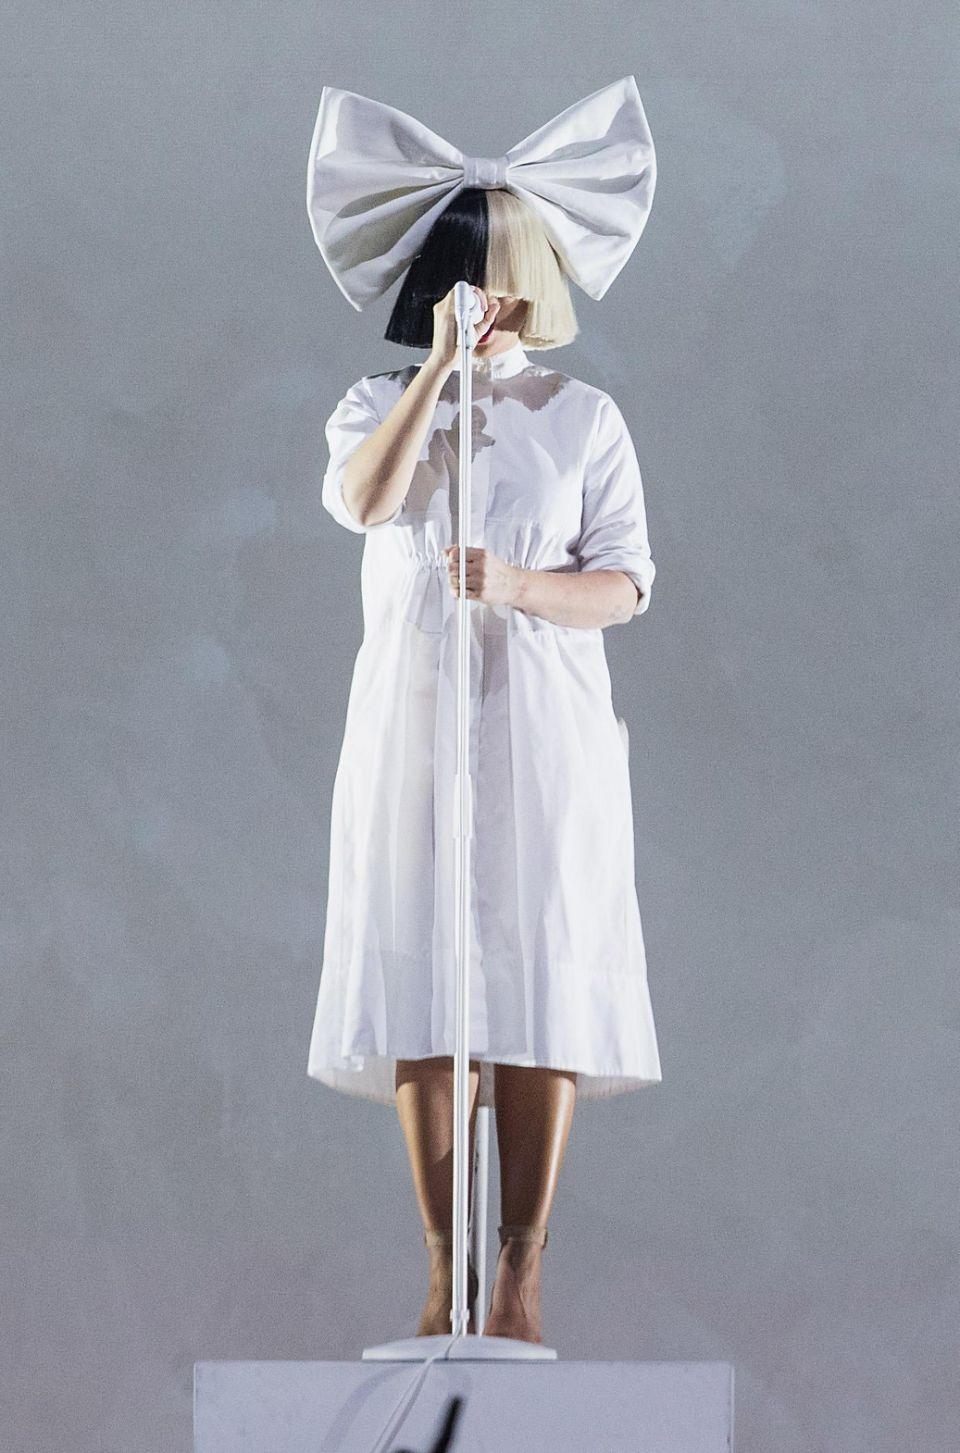 Sia (here performing in September 2016) had heard someone was trying to sell nude photos of her so she took action. Source: Getty